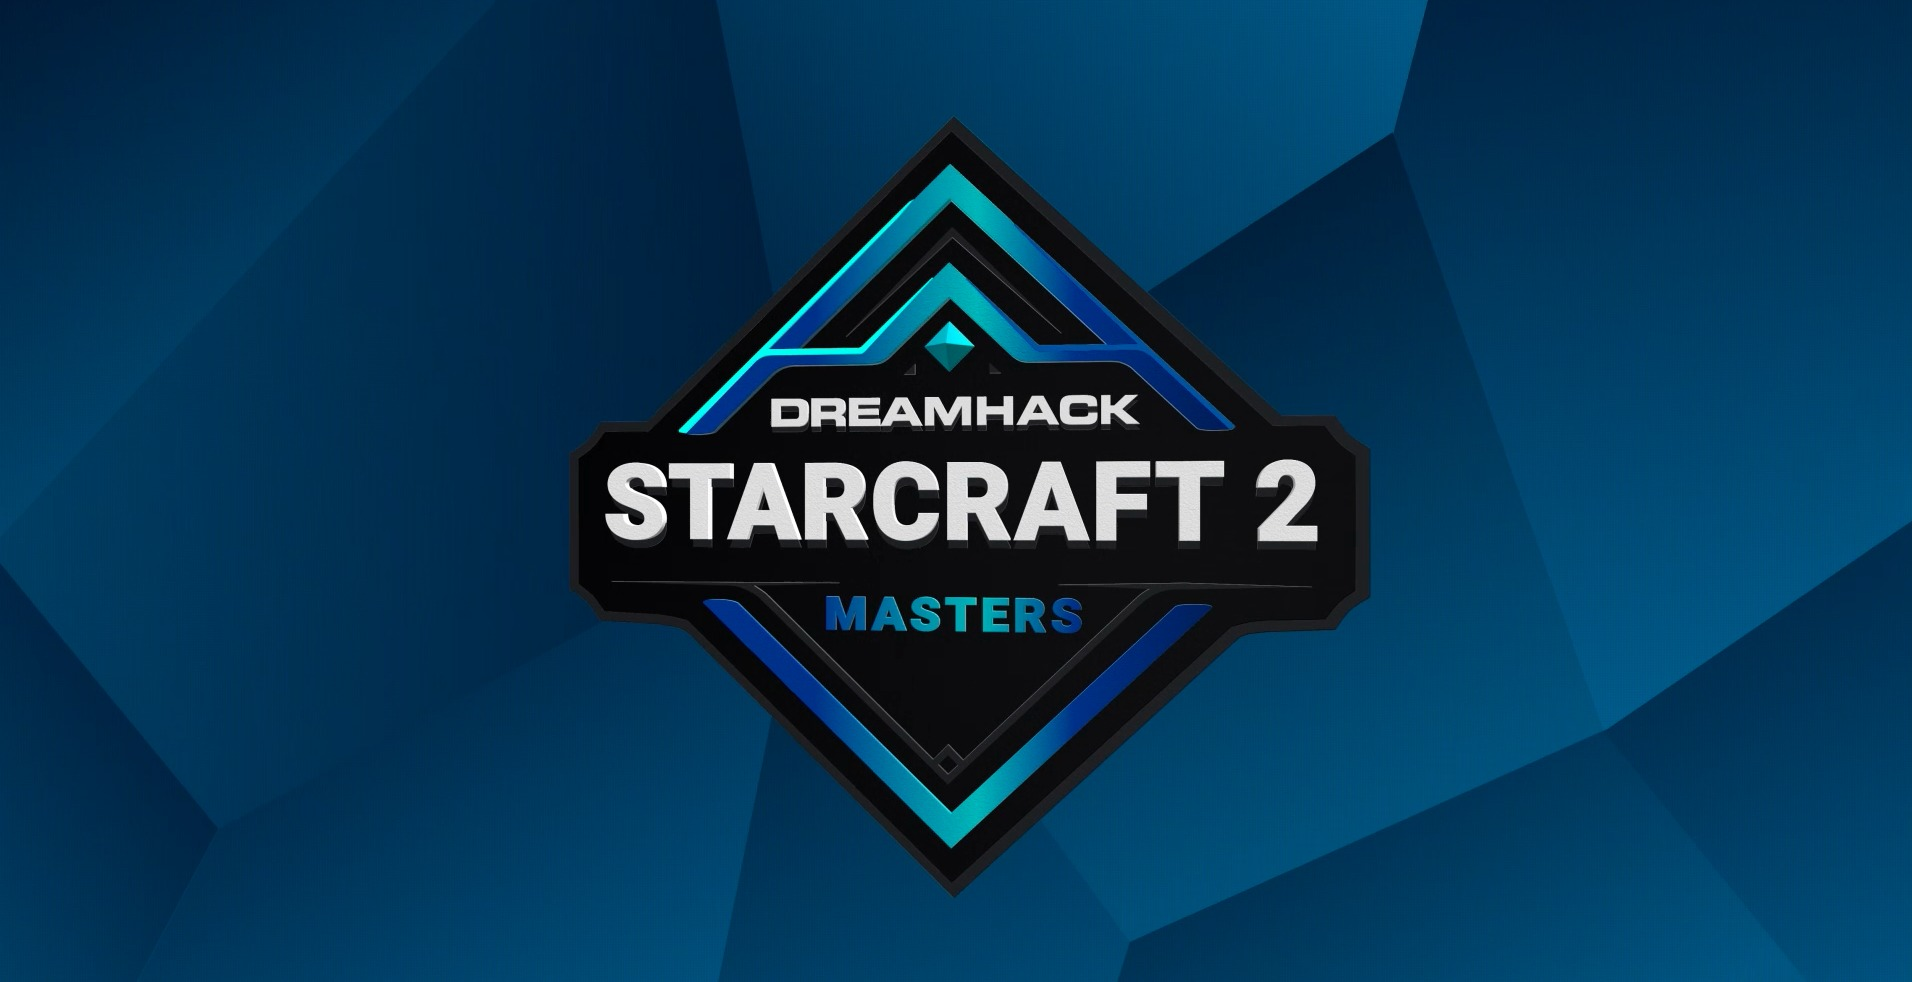 starcraft II dreamhack masters fall europe